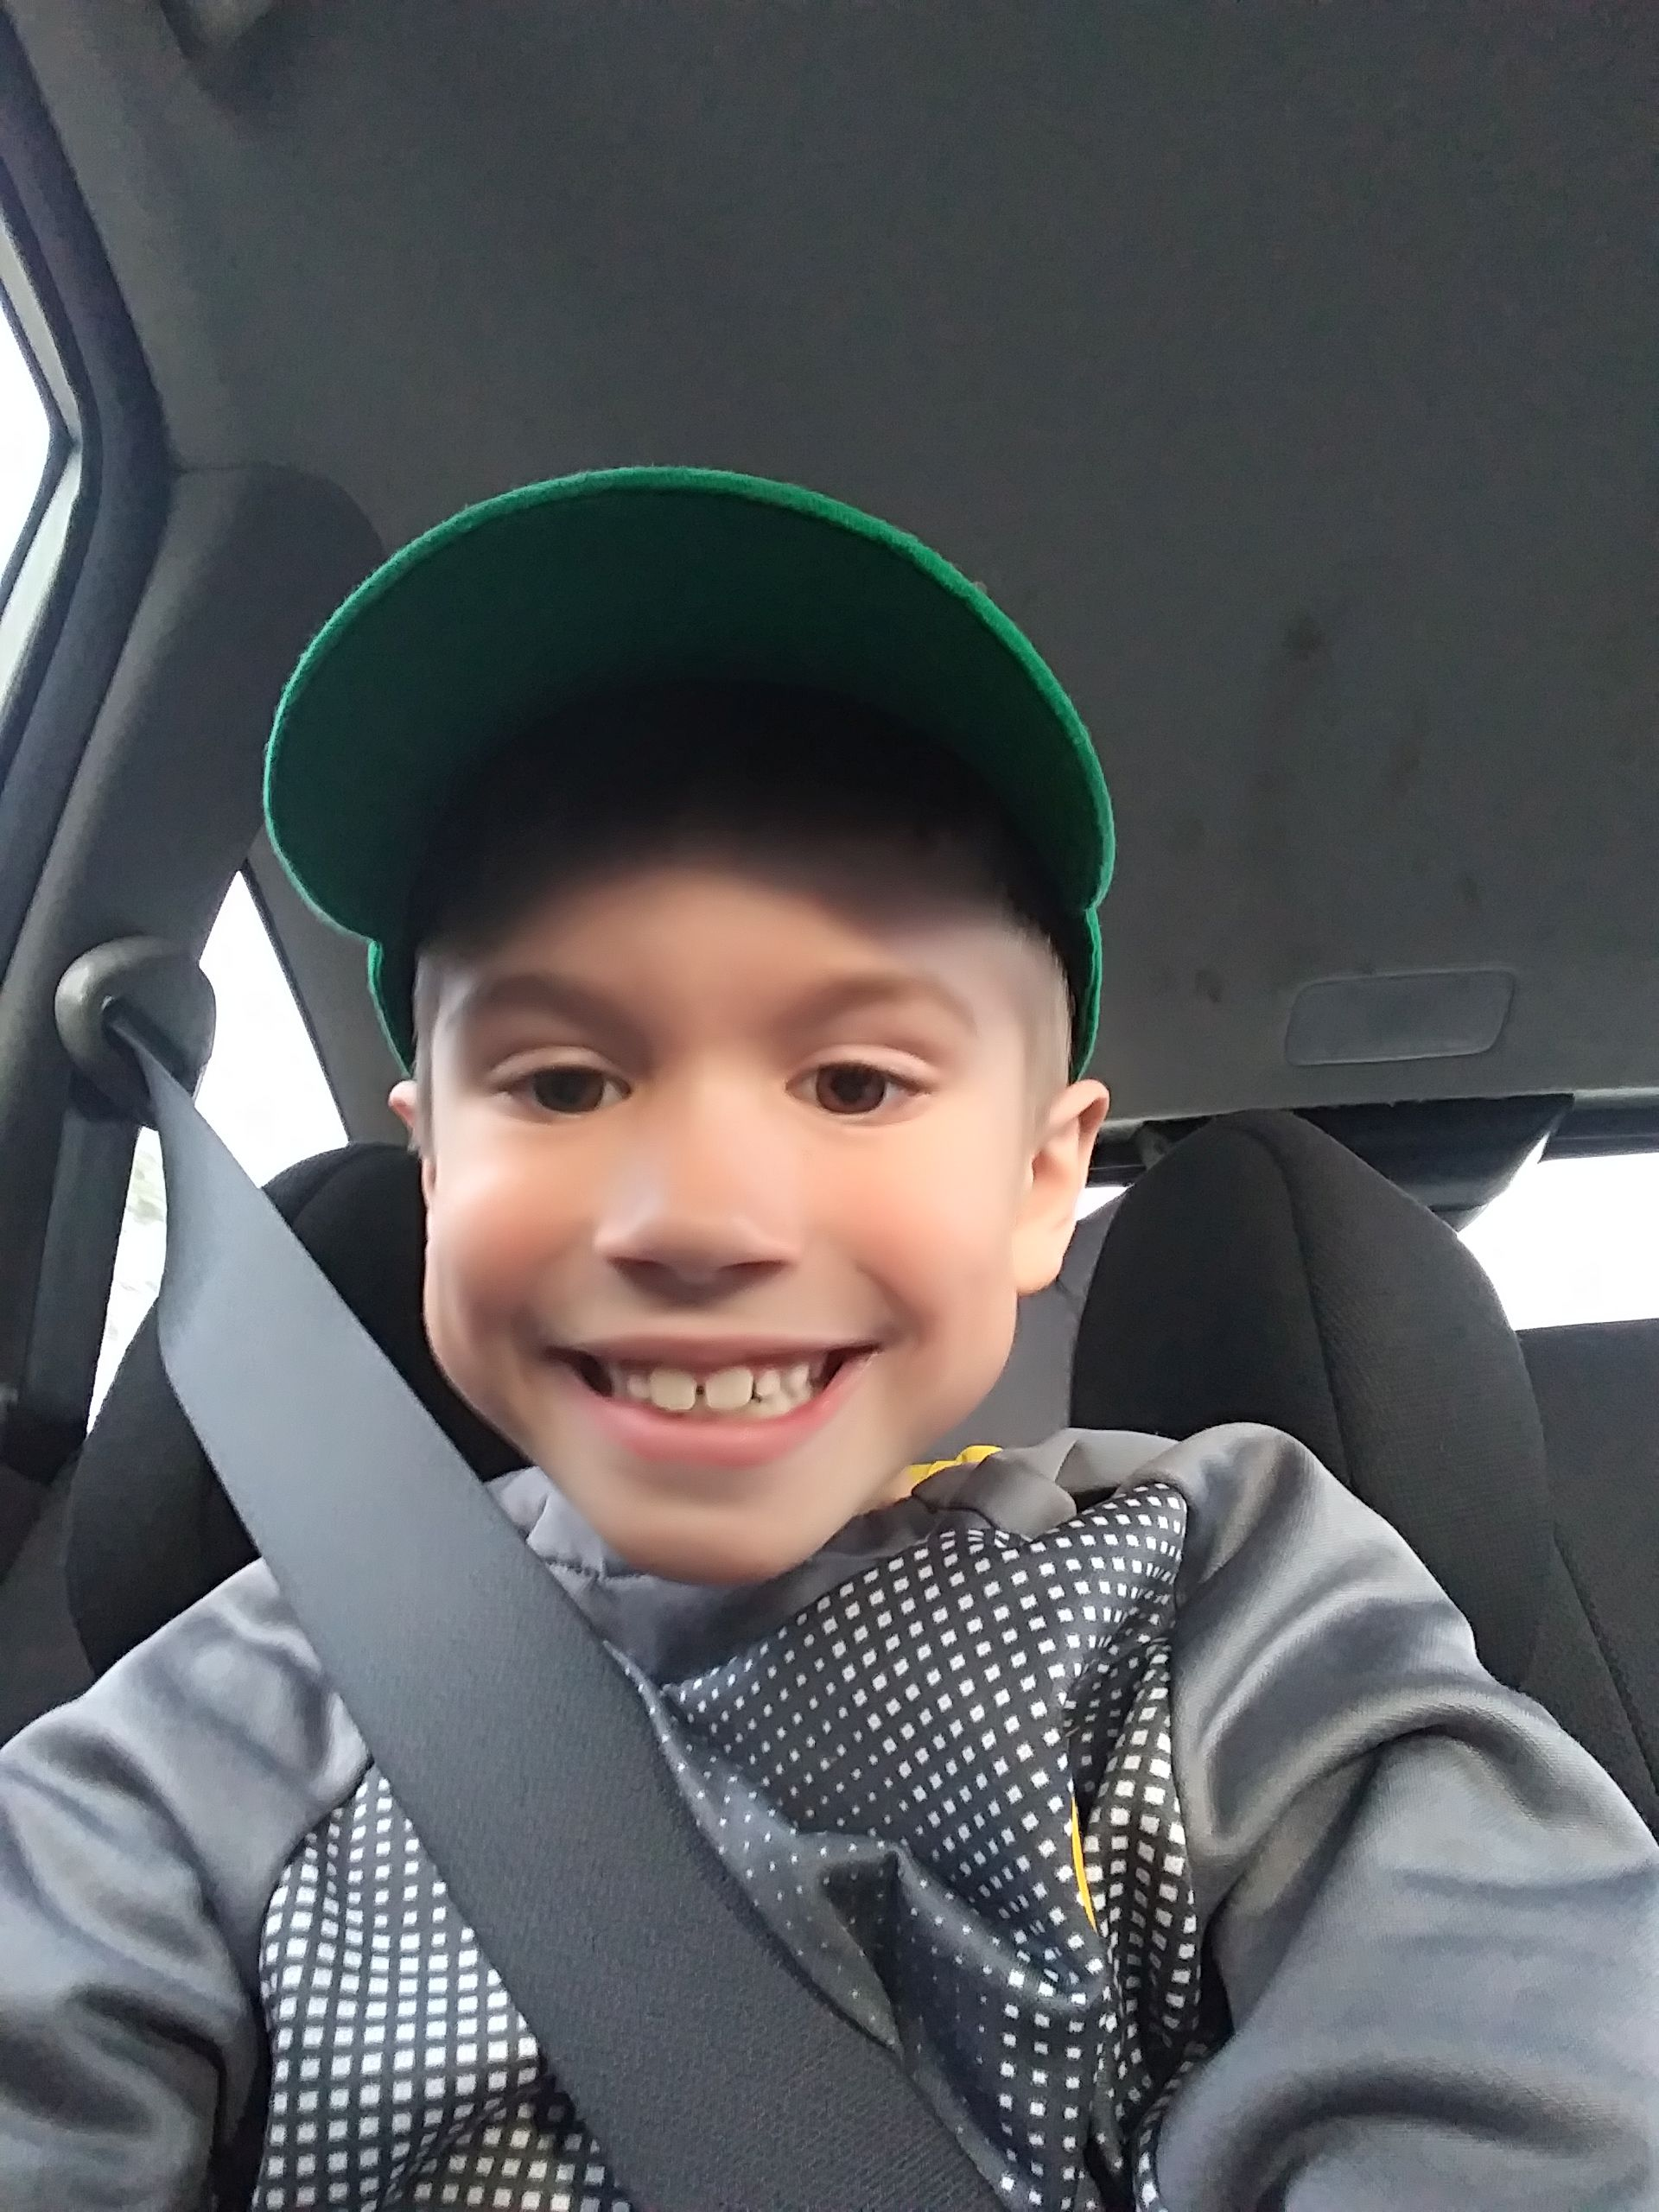 Kelsey's 7-year-old son, Holden